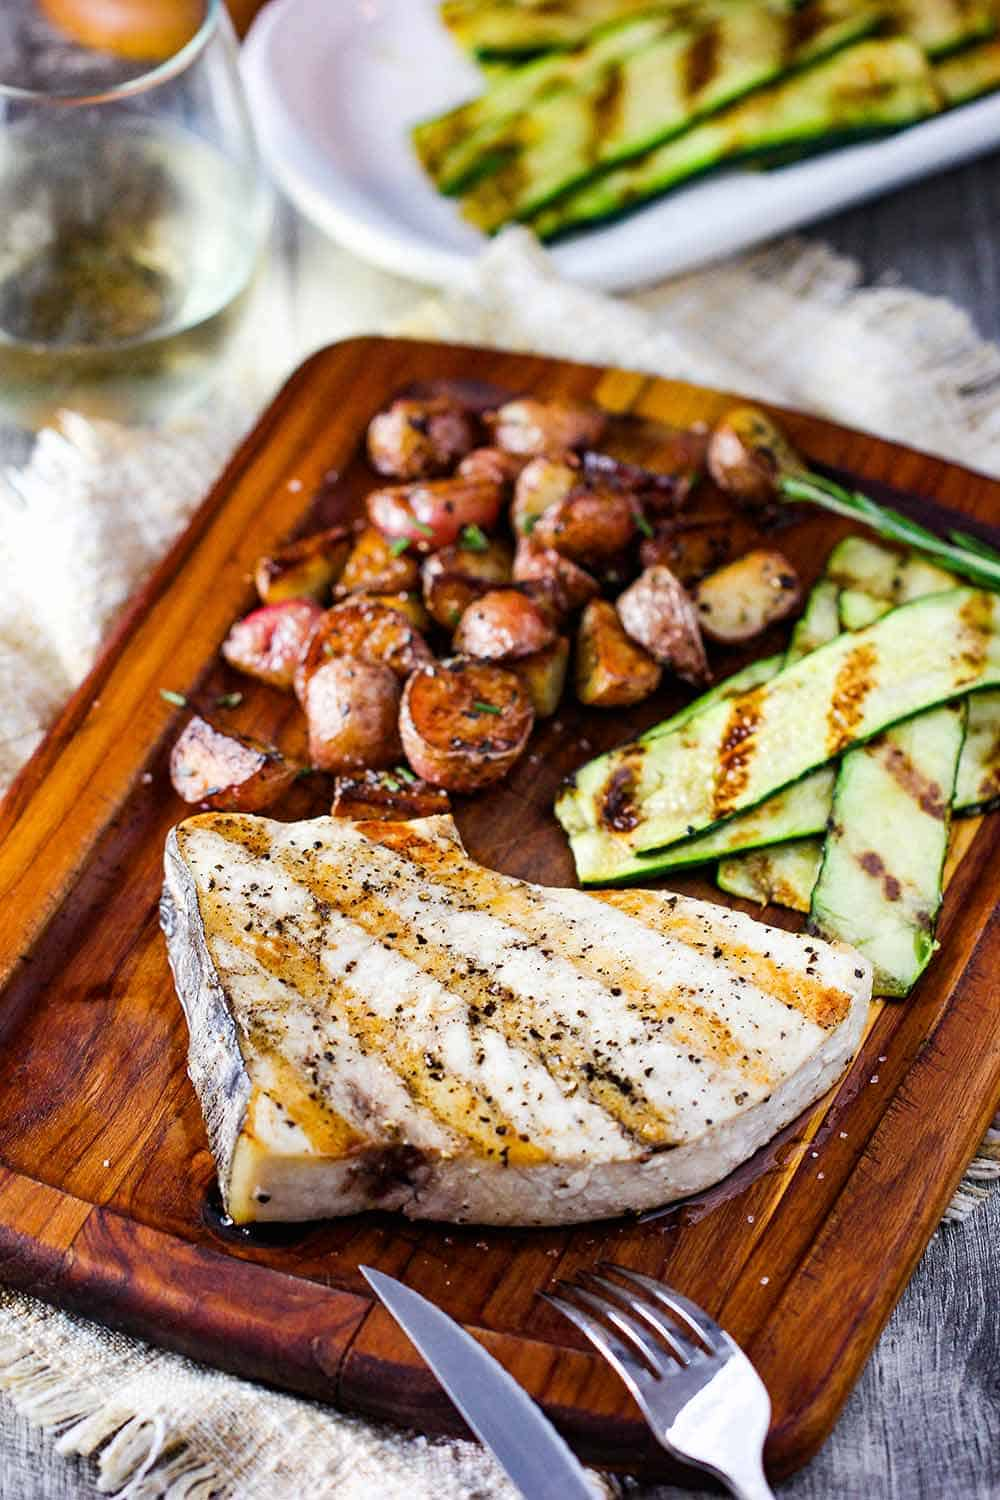 Grilled swordfish steak on a cutting board next to potatoes and grilled zucchini.